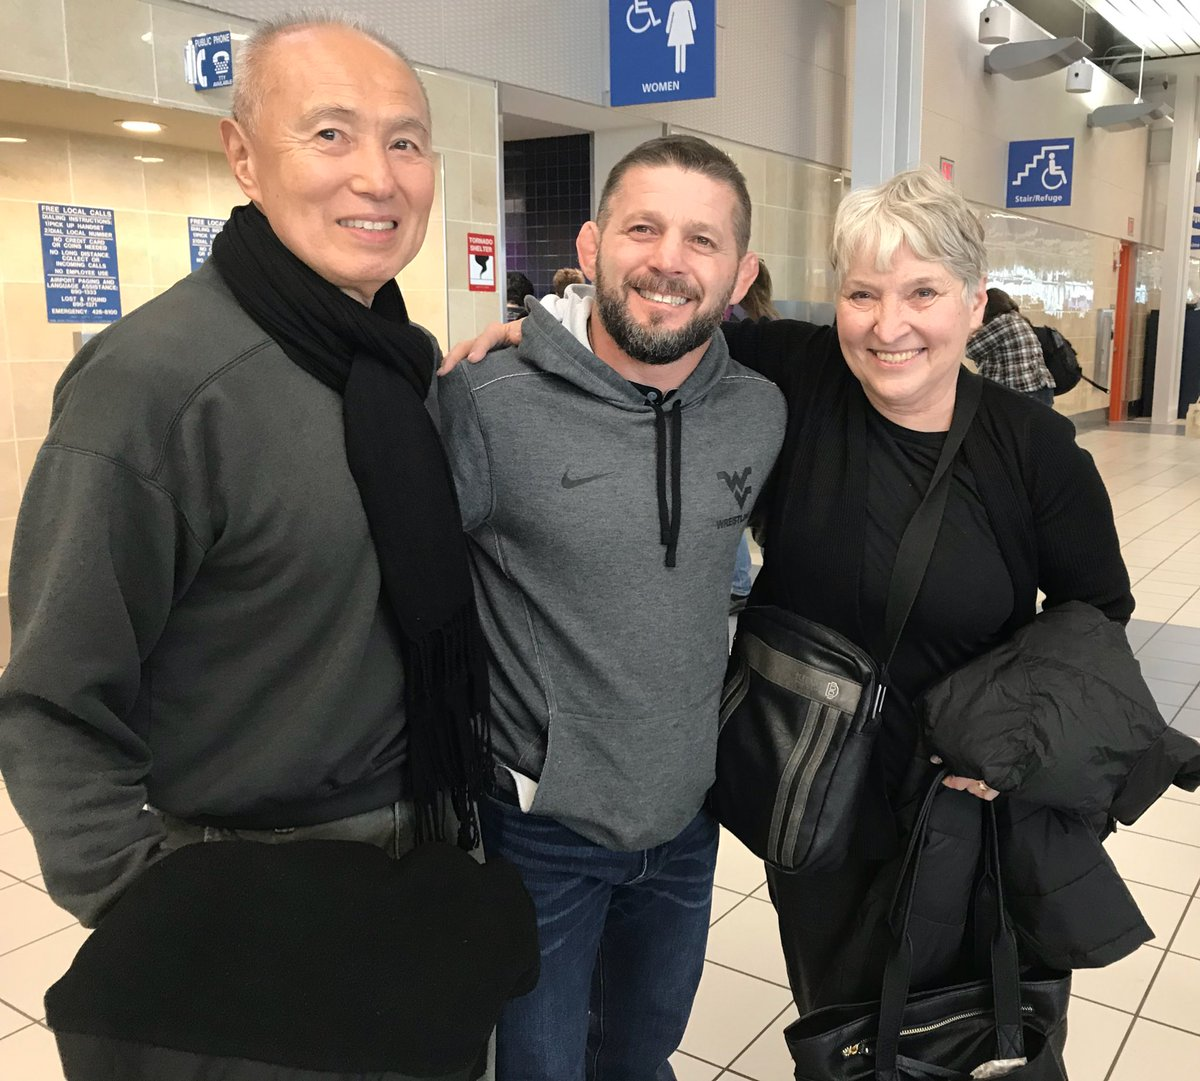 Ran into The Wrestling Legends Mr./Mrs....